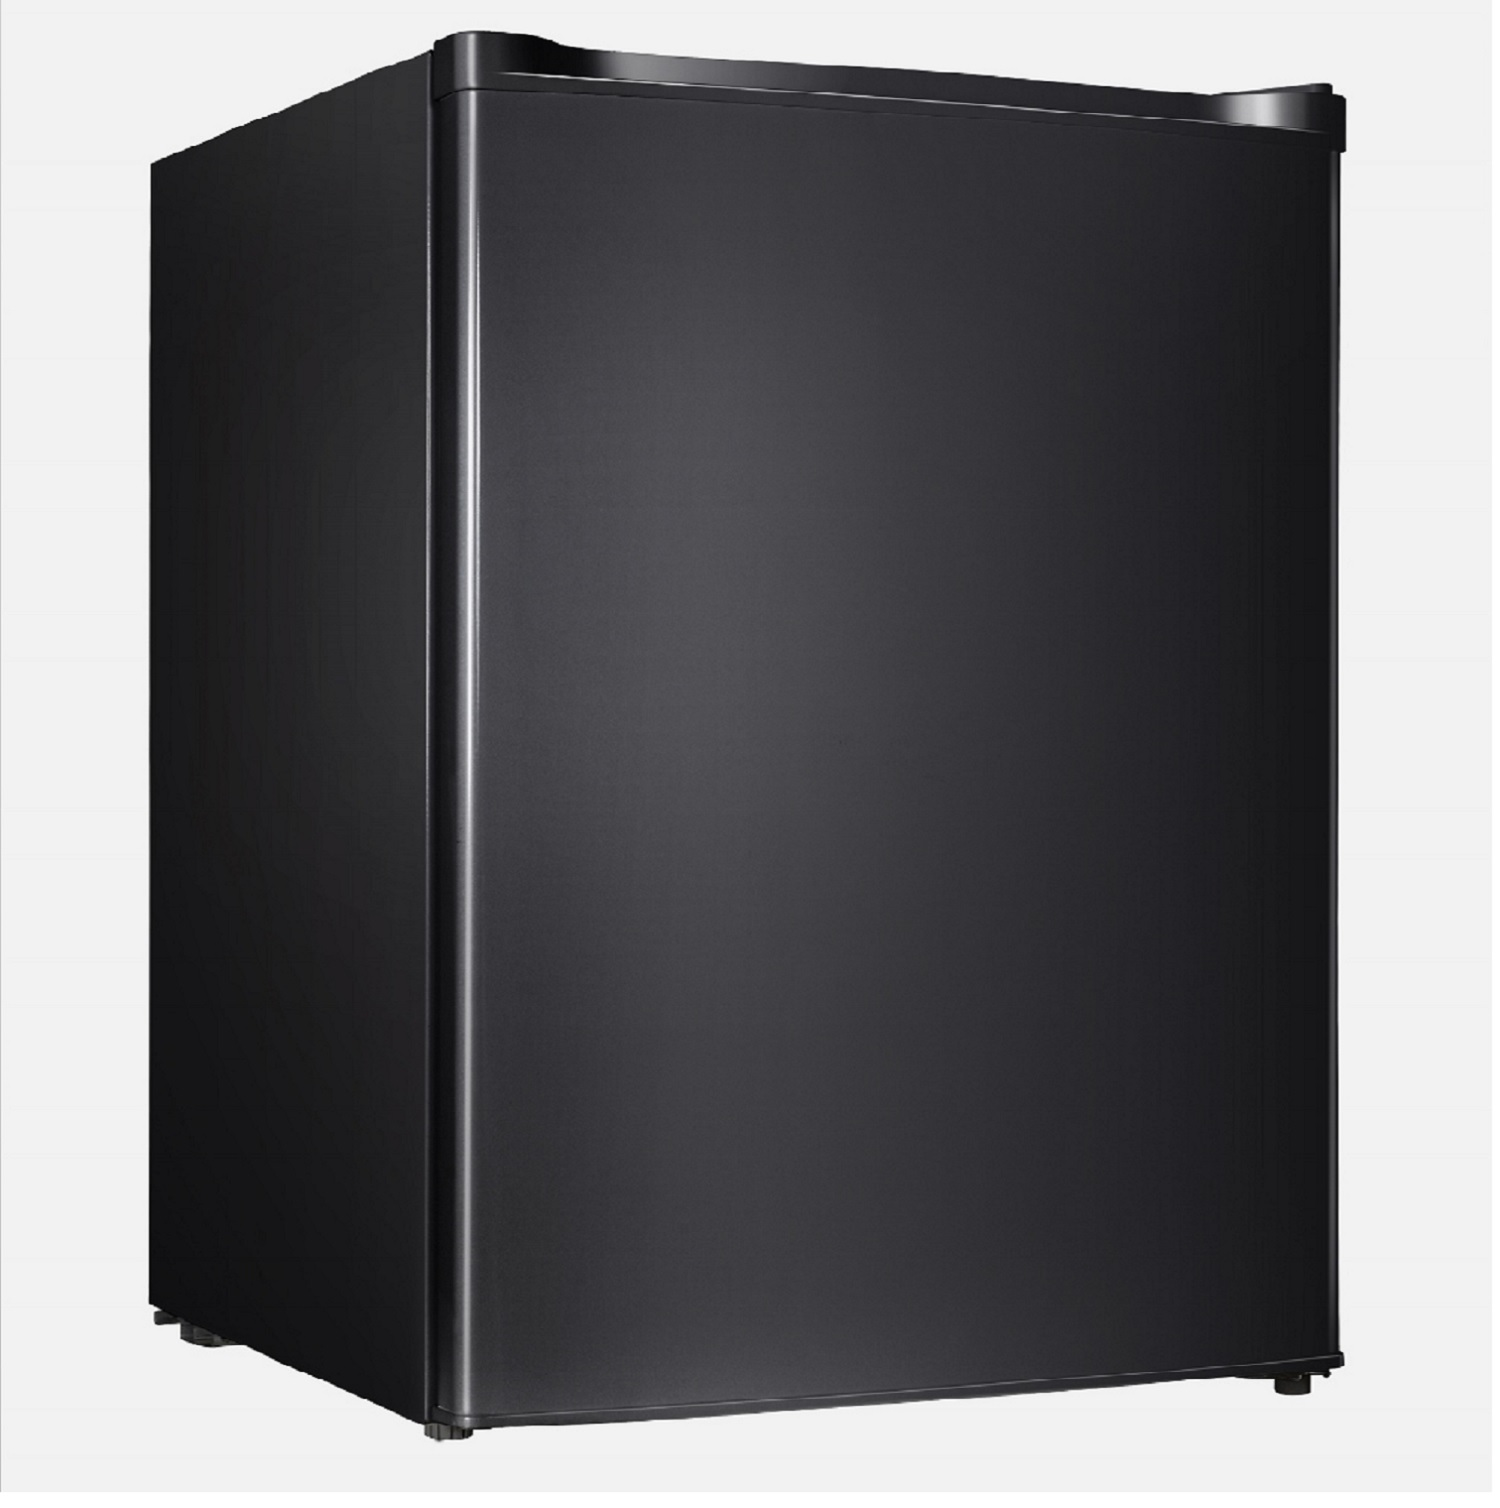 Equator-Midea 3 Cu. Ft Defrost Upright Freezer, Black